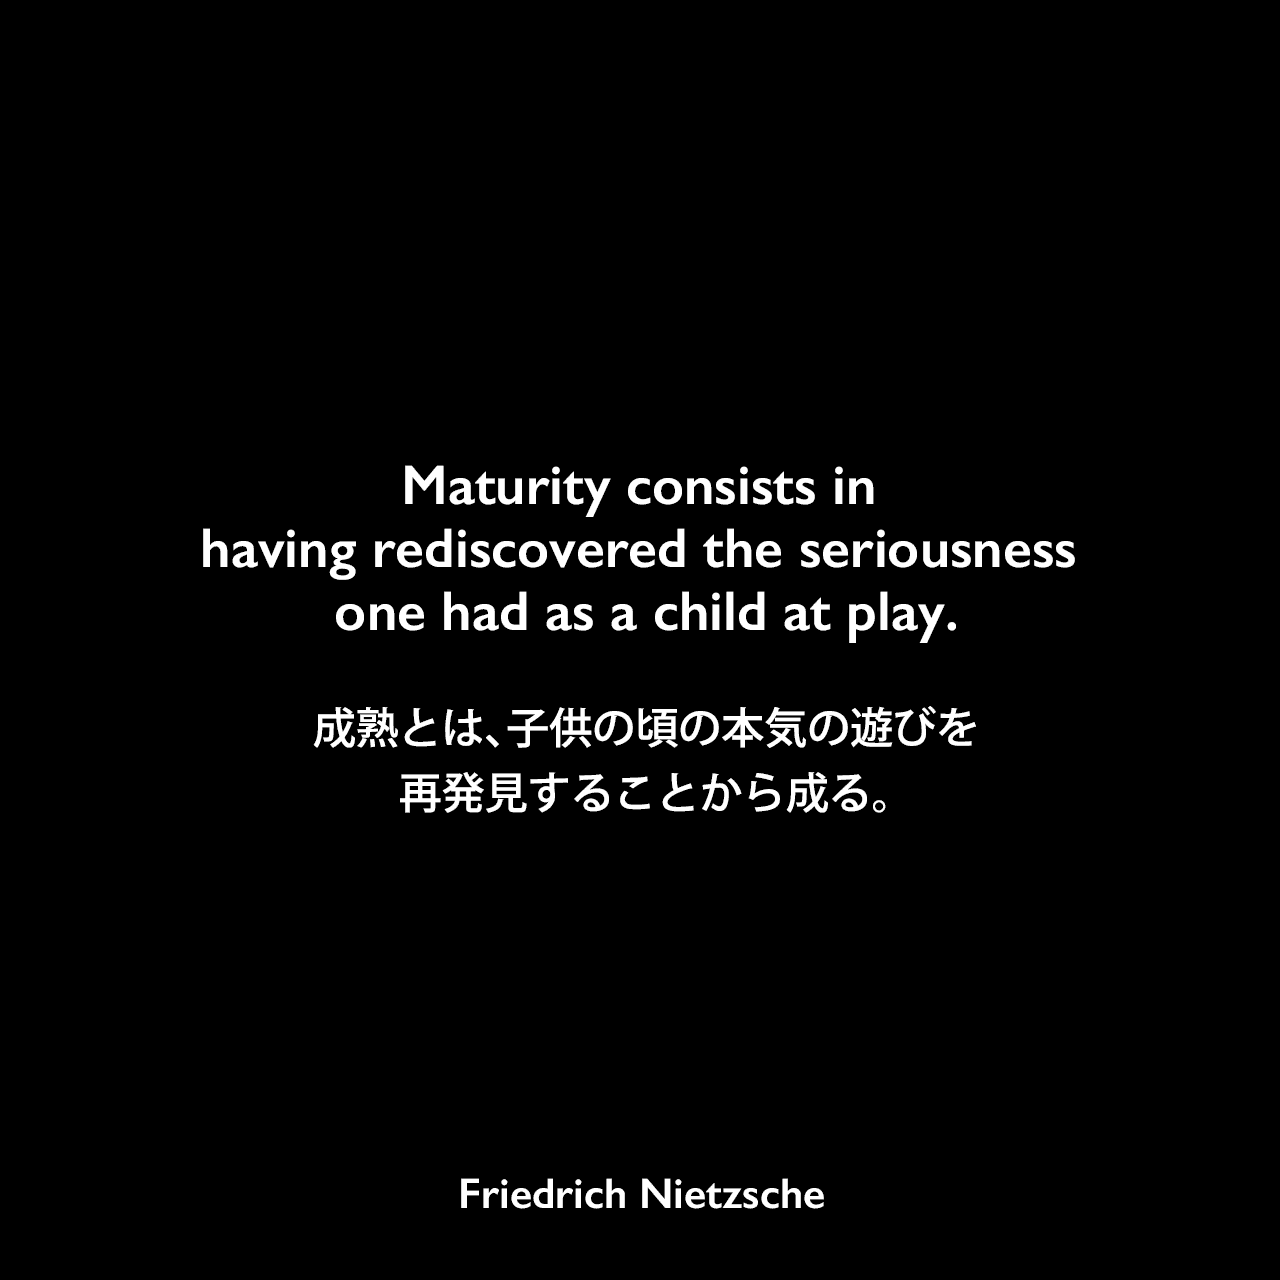 Maturity consists in having rediscovered the seriousness one had as a child at play.成熟とは、子供の頃の本気の遊びを再発見することから成る。Friedrich Nietzsche